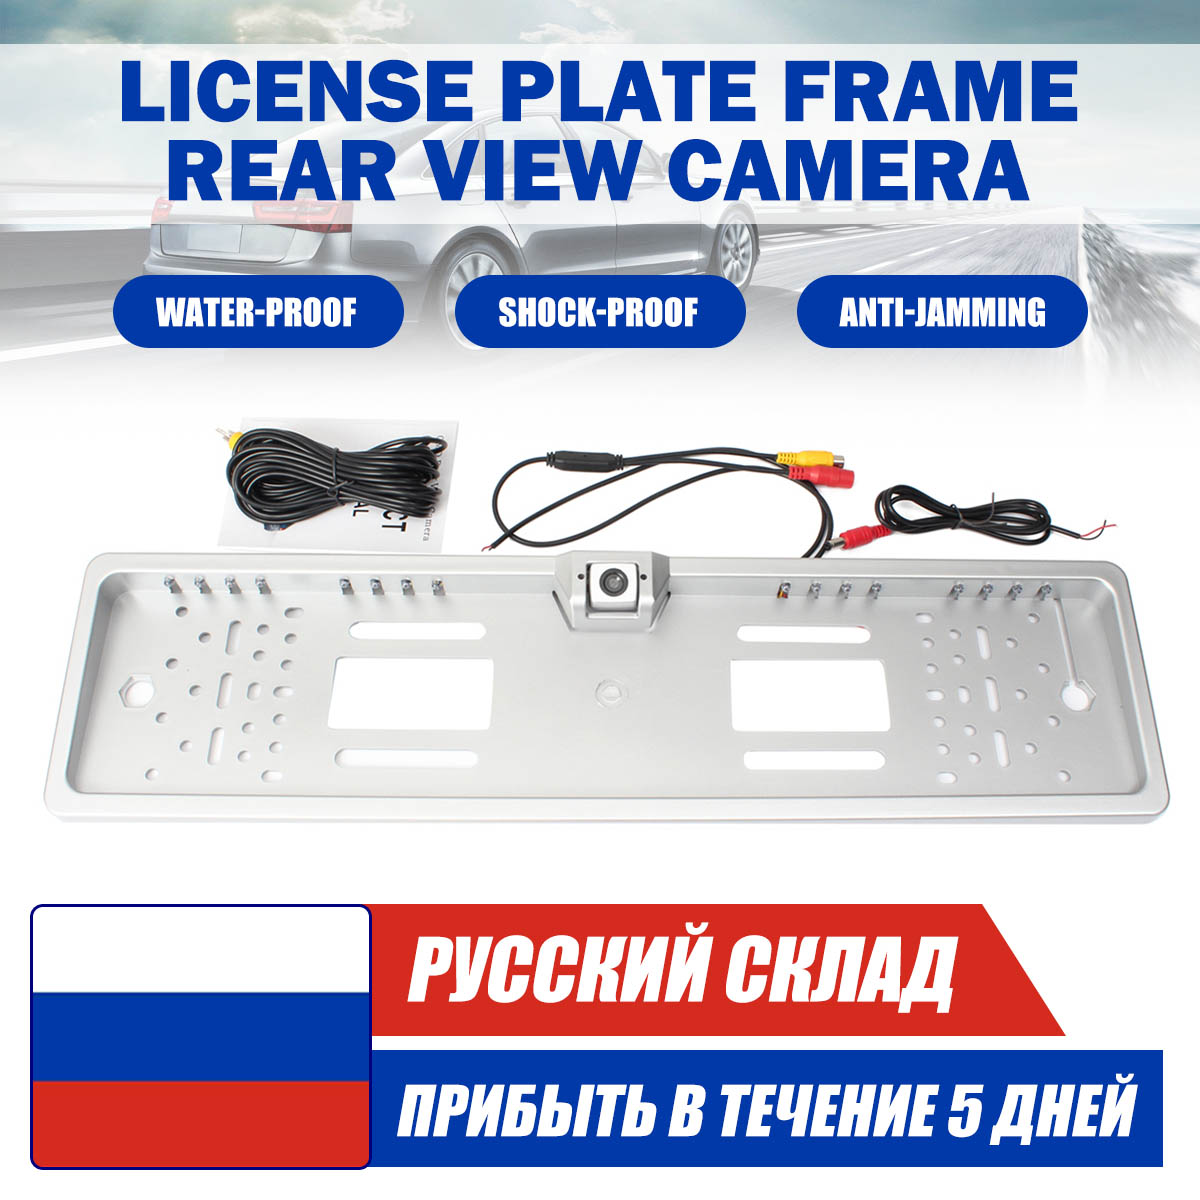 Newest Car 16 LED Number Plate Frame Light Rear View Camera Backup Parking Reversing 170 degree wide viewing angleNewest Car 16 LED Number Plate Frame Light Rear View Camera Backup Parking Reversing 170 degree wide viewing angle